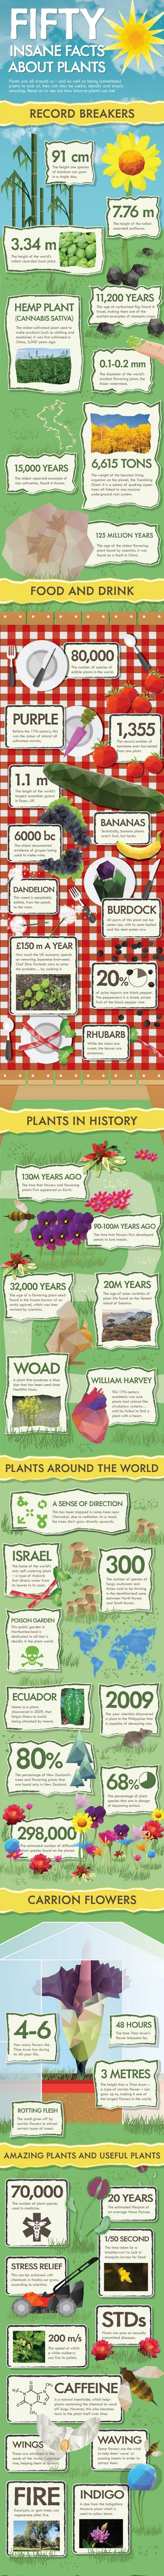 50 plant facts